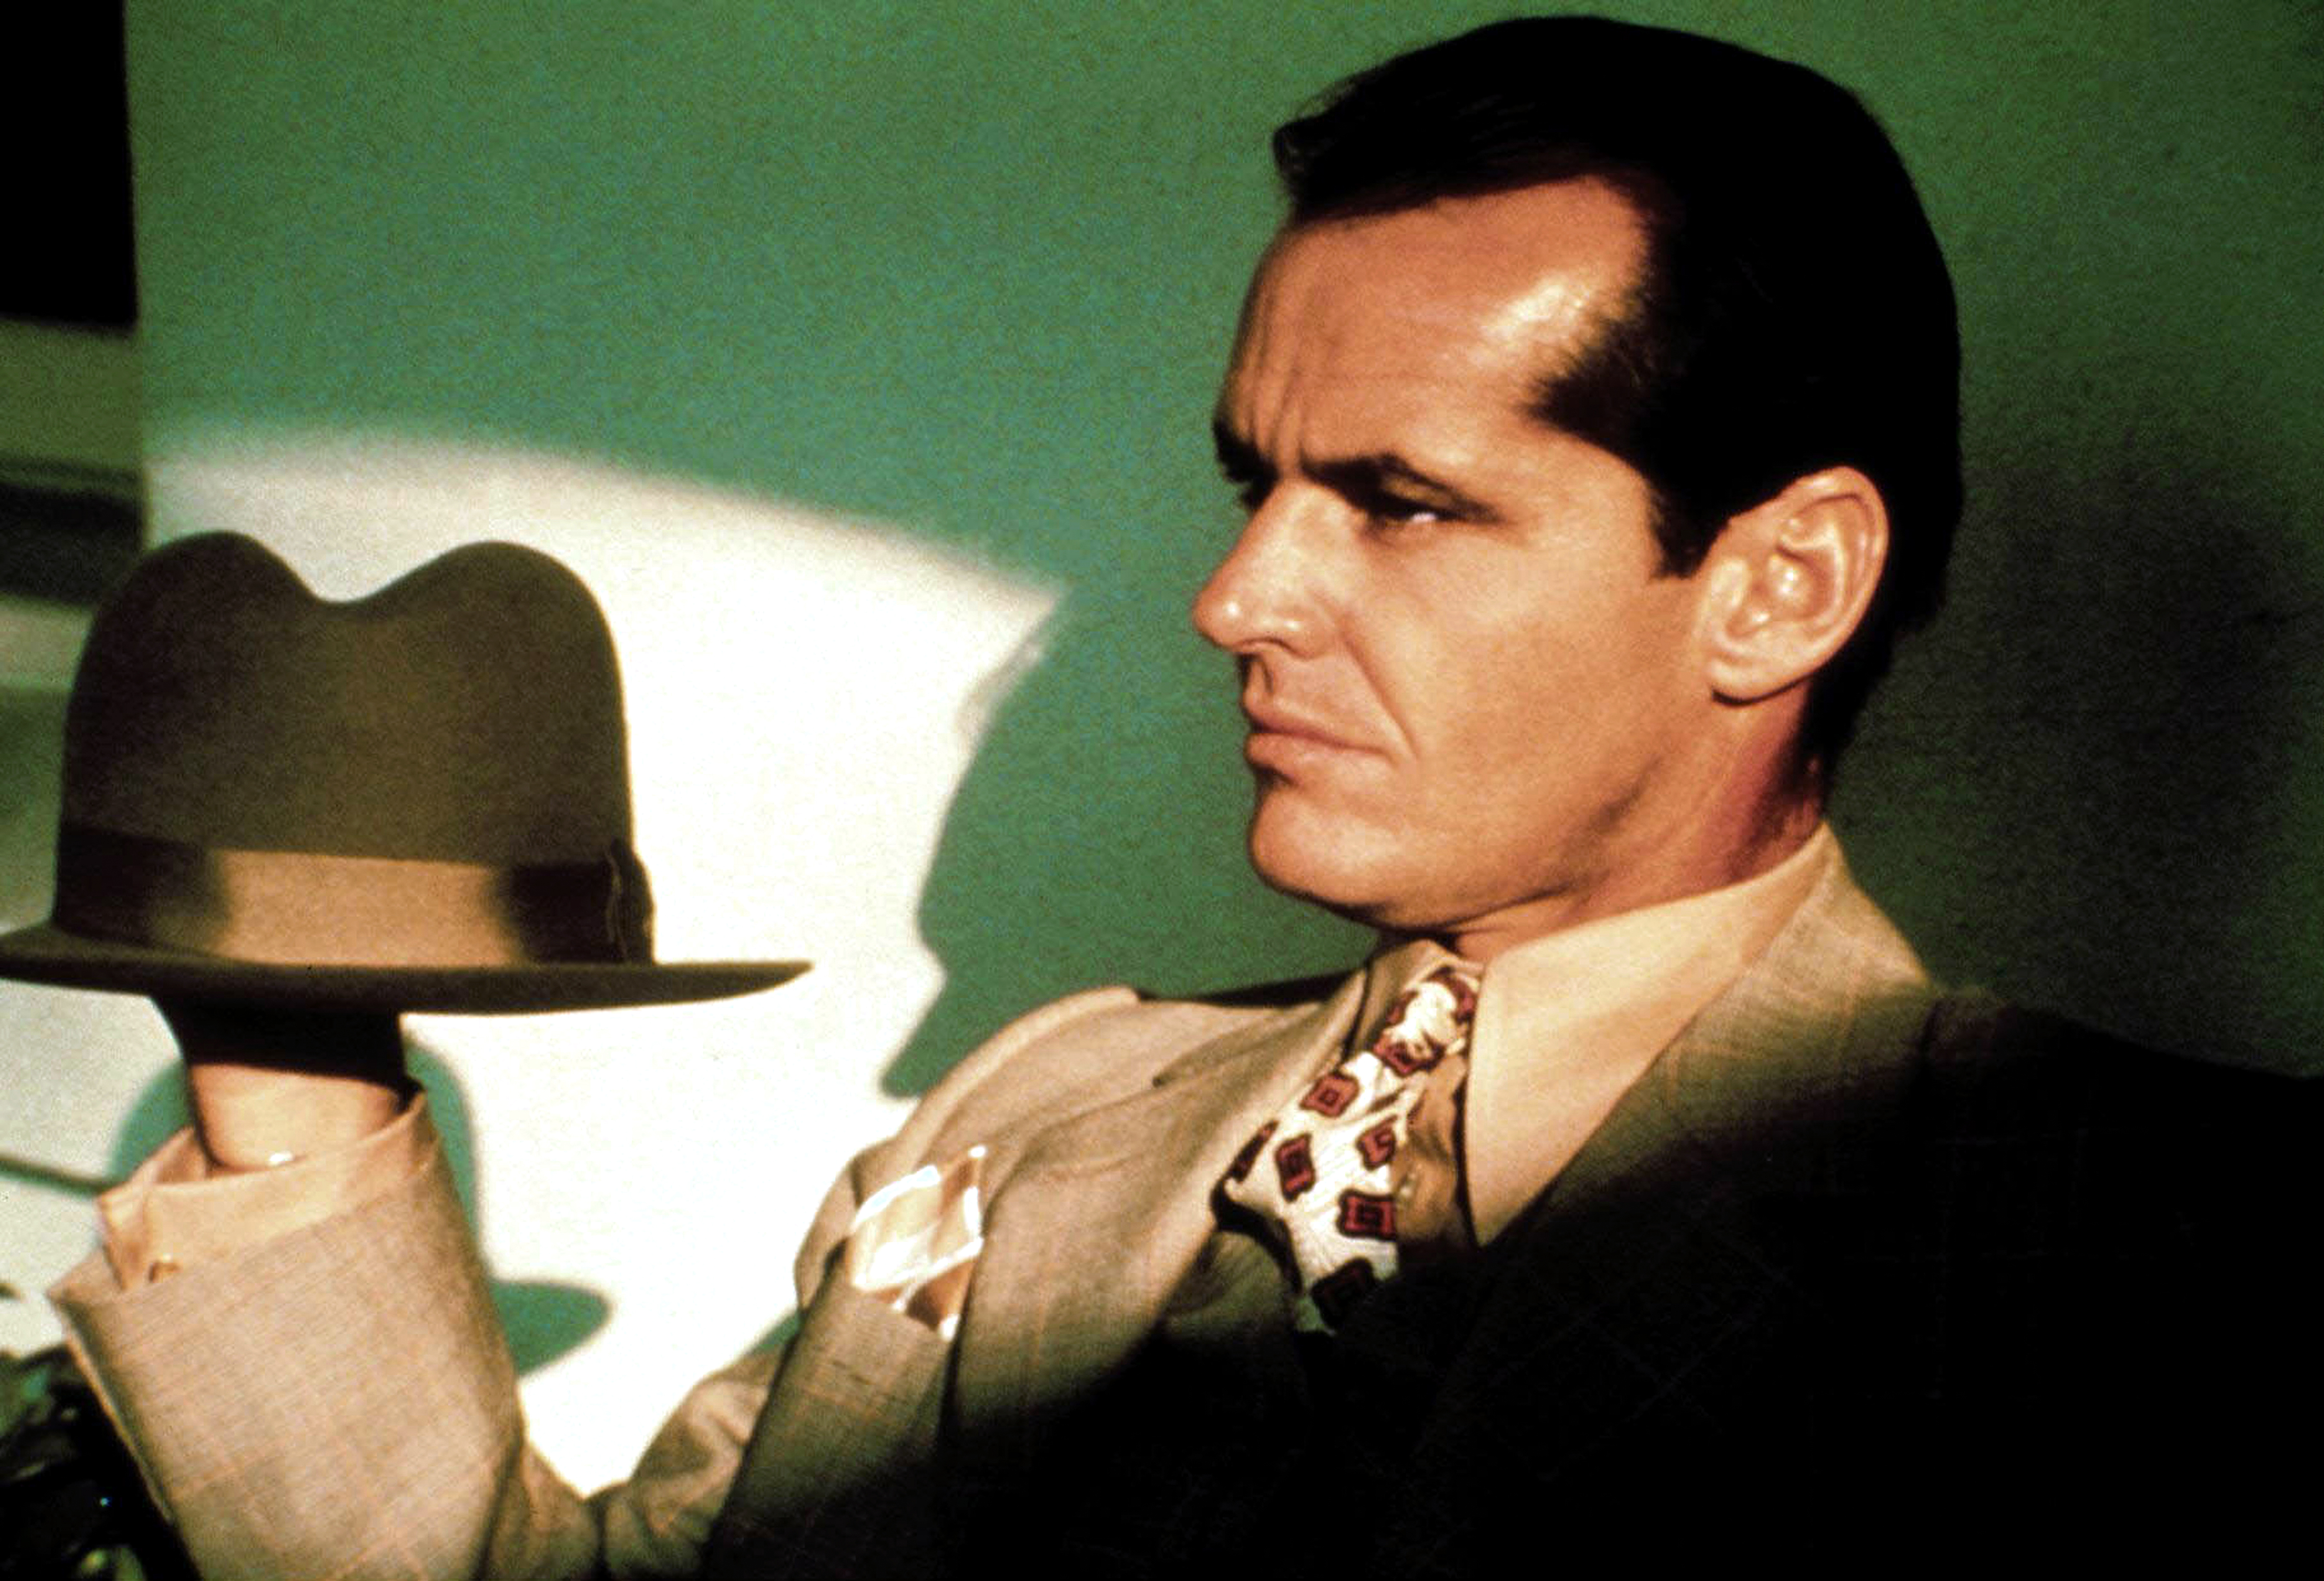 American actor Jack Nicholson on the set of Chinatown written and directed by Polish-French Roman Polanski. (Photo by Sunset Boulevard/Corbis via Getty Images)